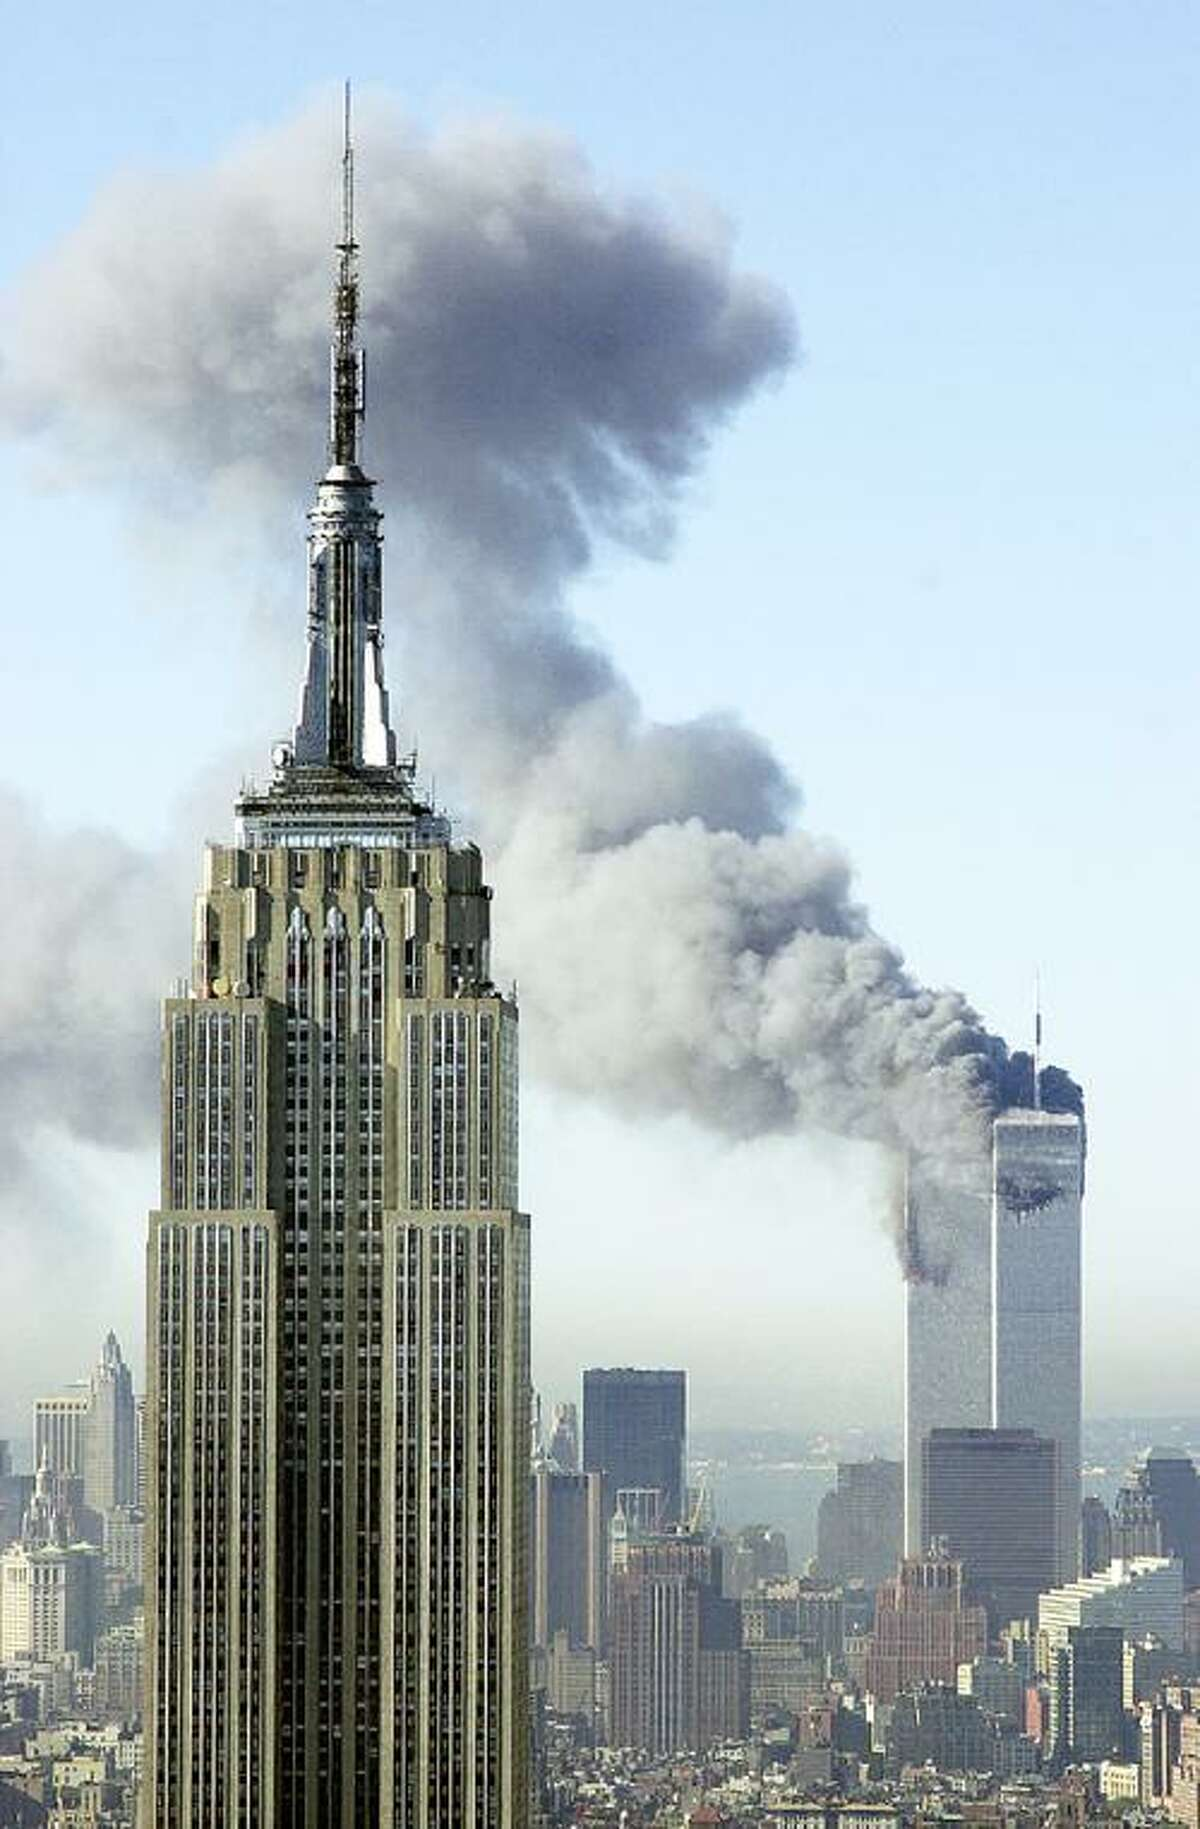 In this Sept. 11, 2001, file photo, plumes of smoke rise from the World Trade Center buildings in New York. The Empire State building is seen in the foreground. Television viewers who want to immerse themselves in memories of the Sept. 11 terrorist attacks as the 10th anniversary approaches will have a staggering number of choices, and on the day itself, broadcast and cable news networks will all have their top talent on hand for special coverage. (AP Photo/Patrick Sison, File)